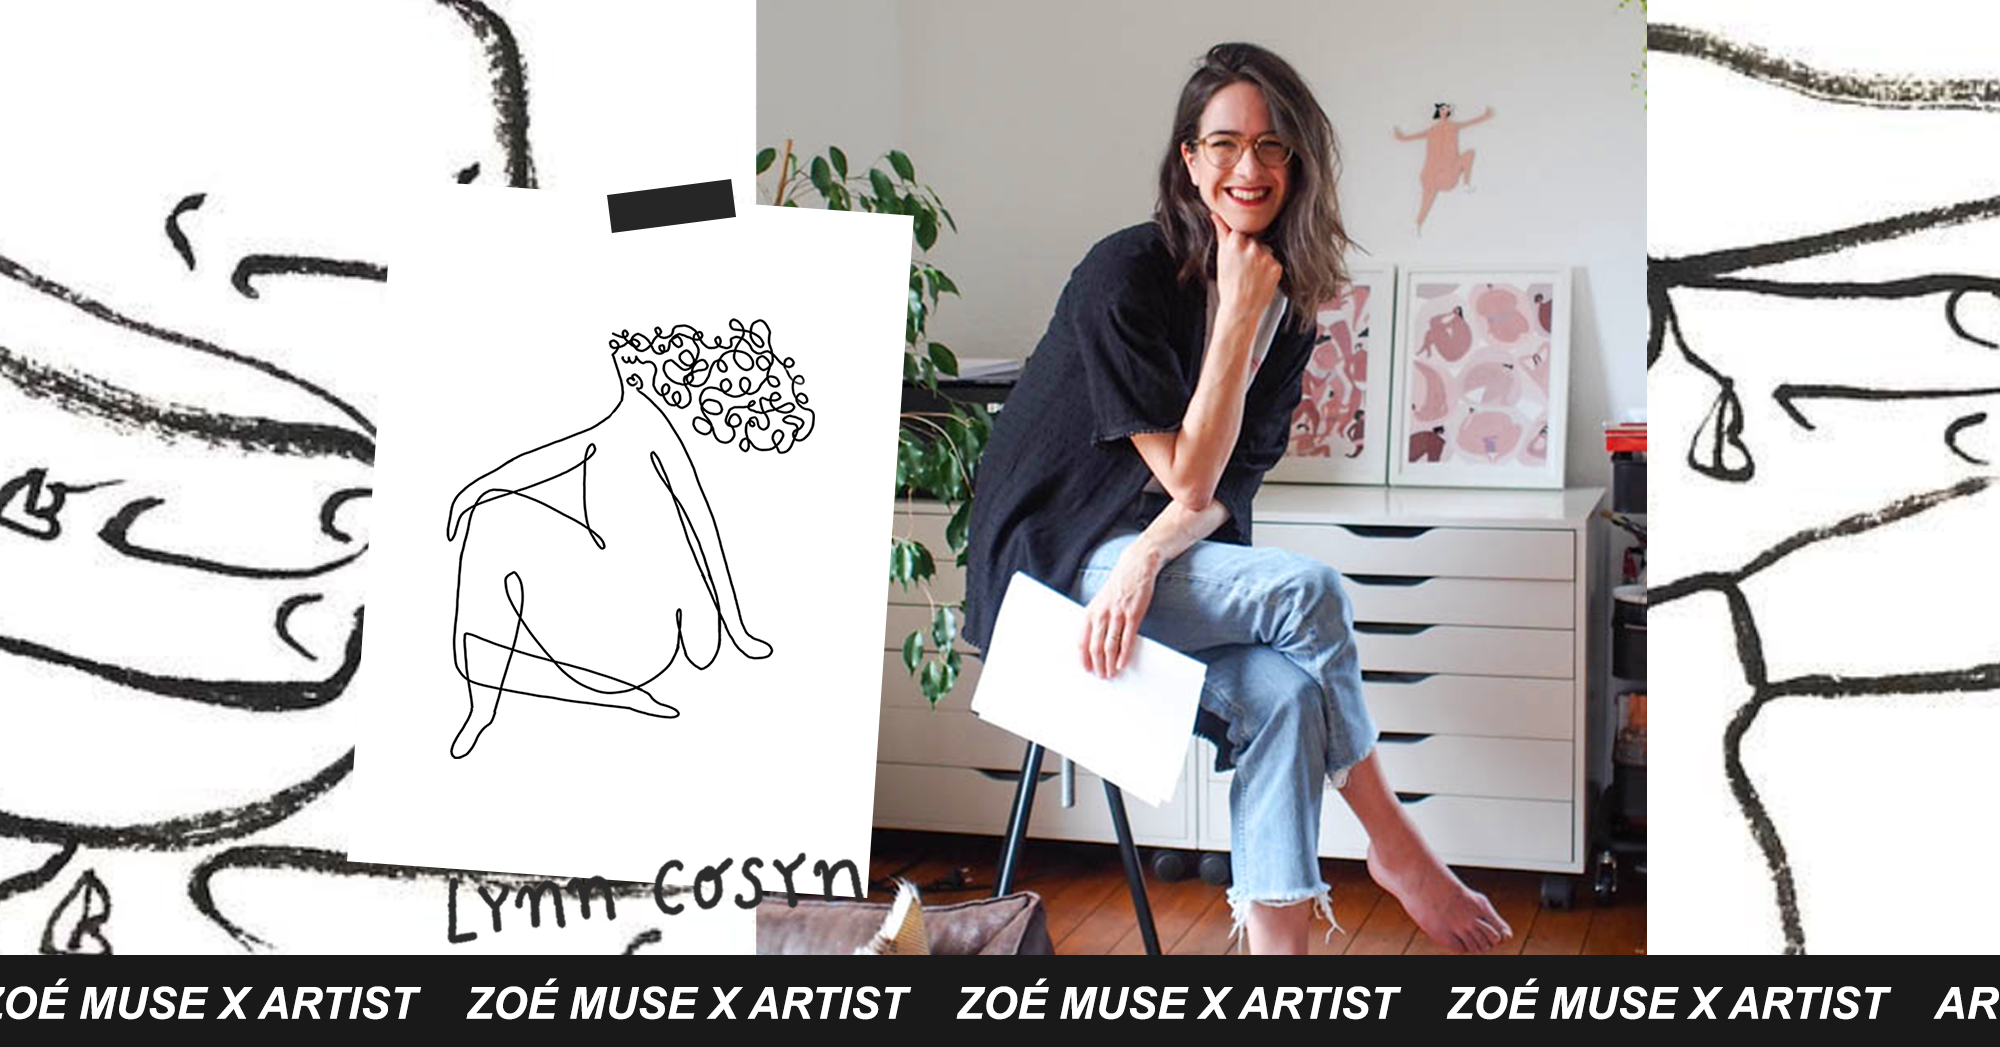 Lynn Cosyn x Zoé Muse | LUXEMBOURG